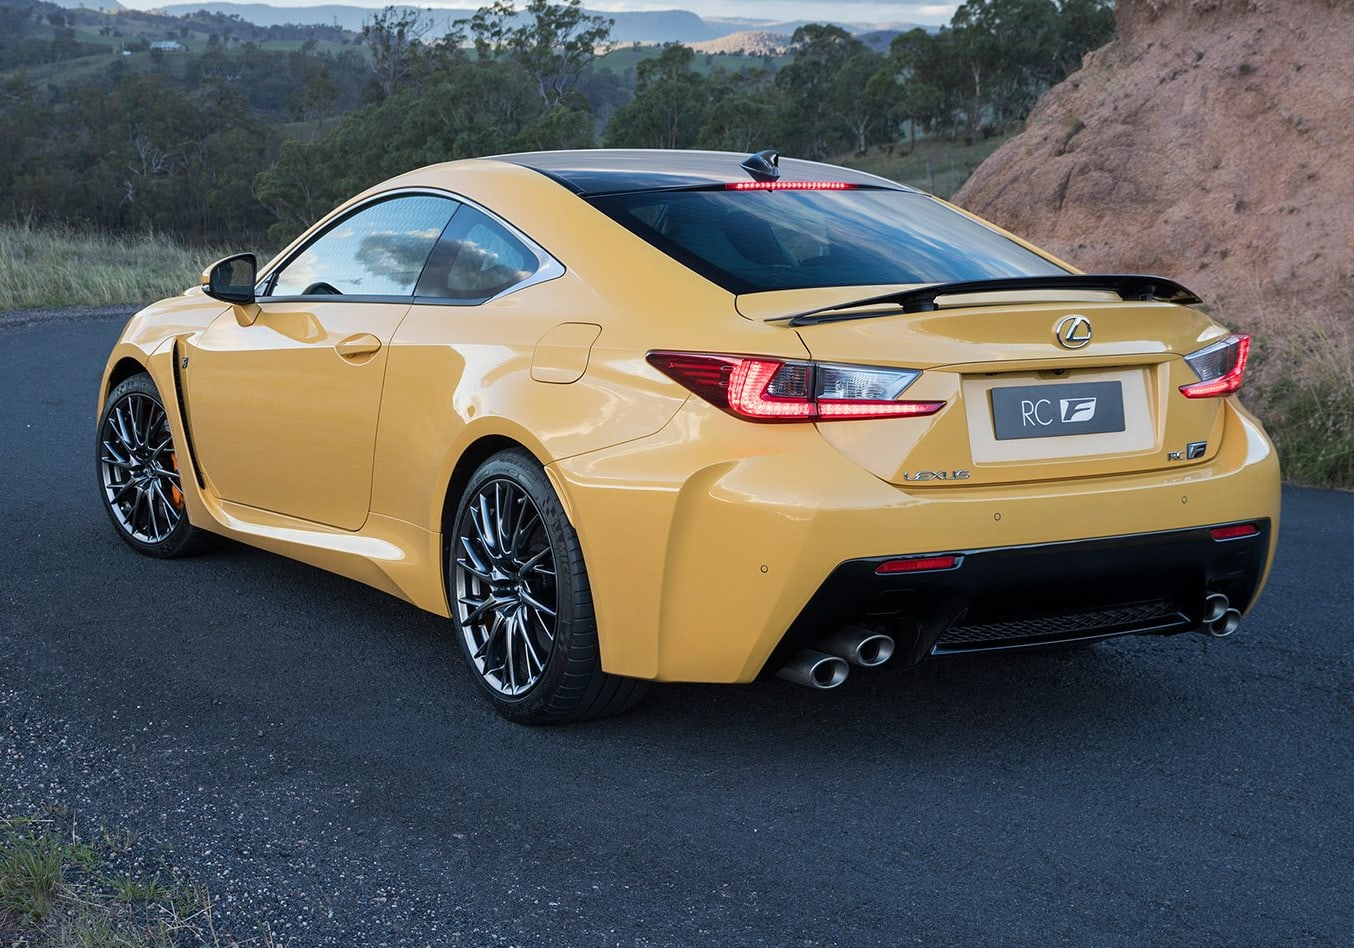 2018 Lexus RC pricing and features